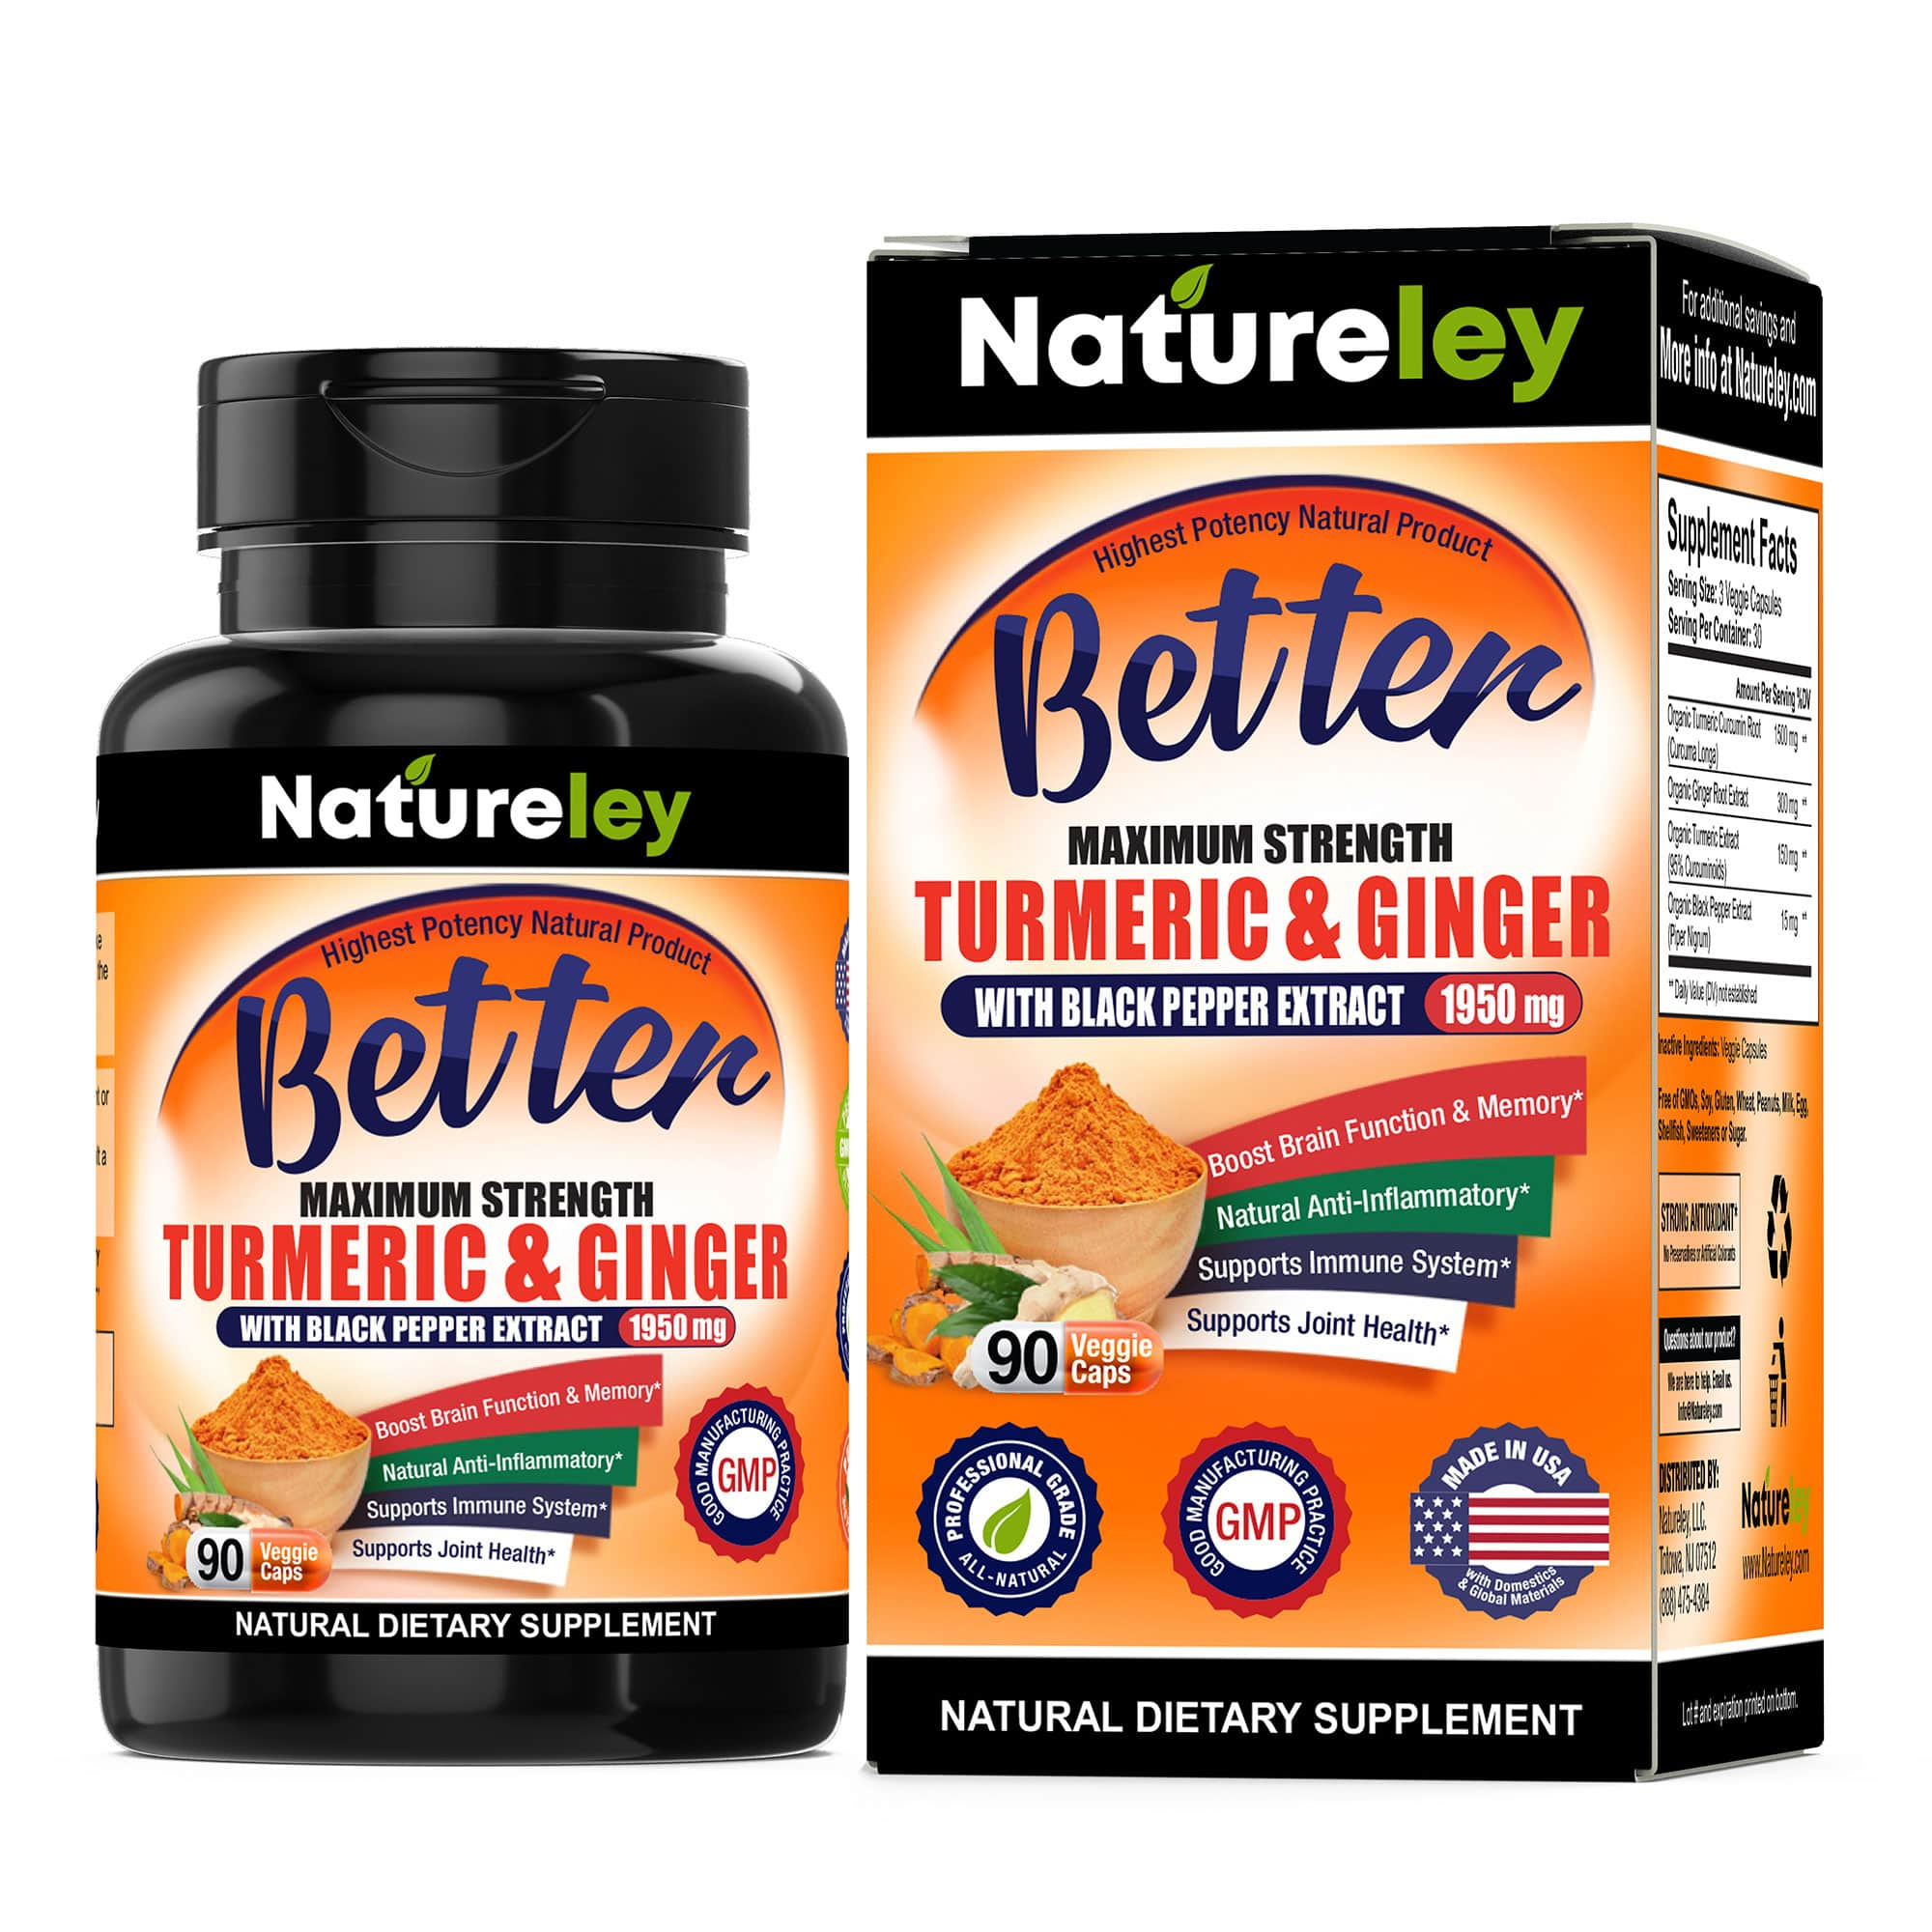 Organic Turmeric & Ginger with Black Pepper Extract - 1950 mg 90 Caps